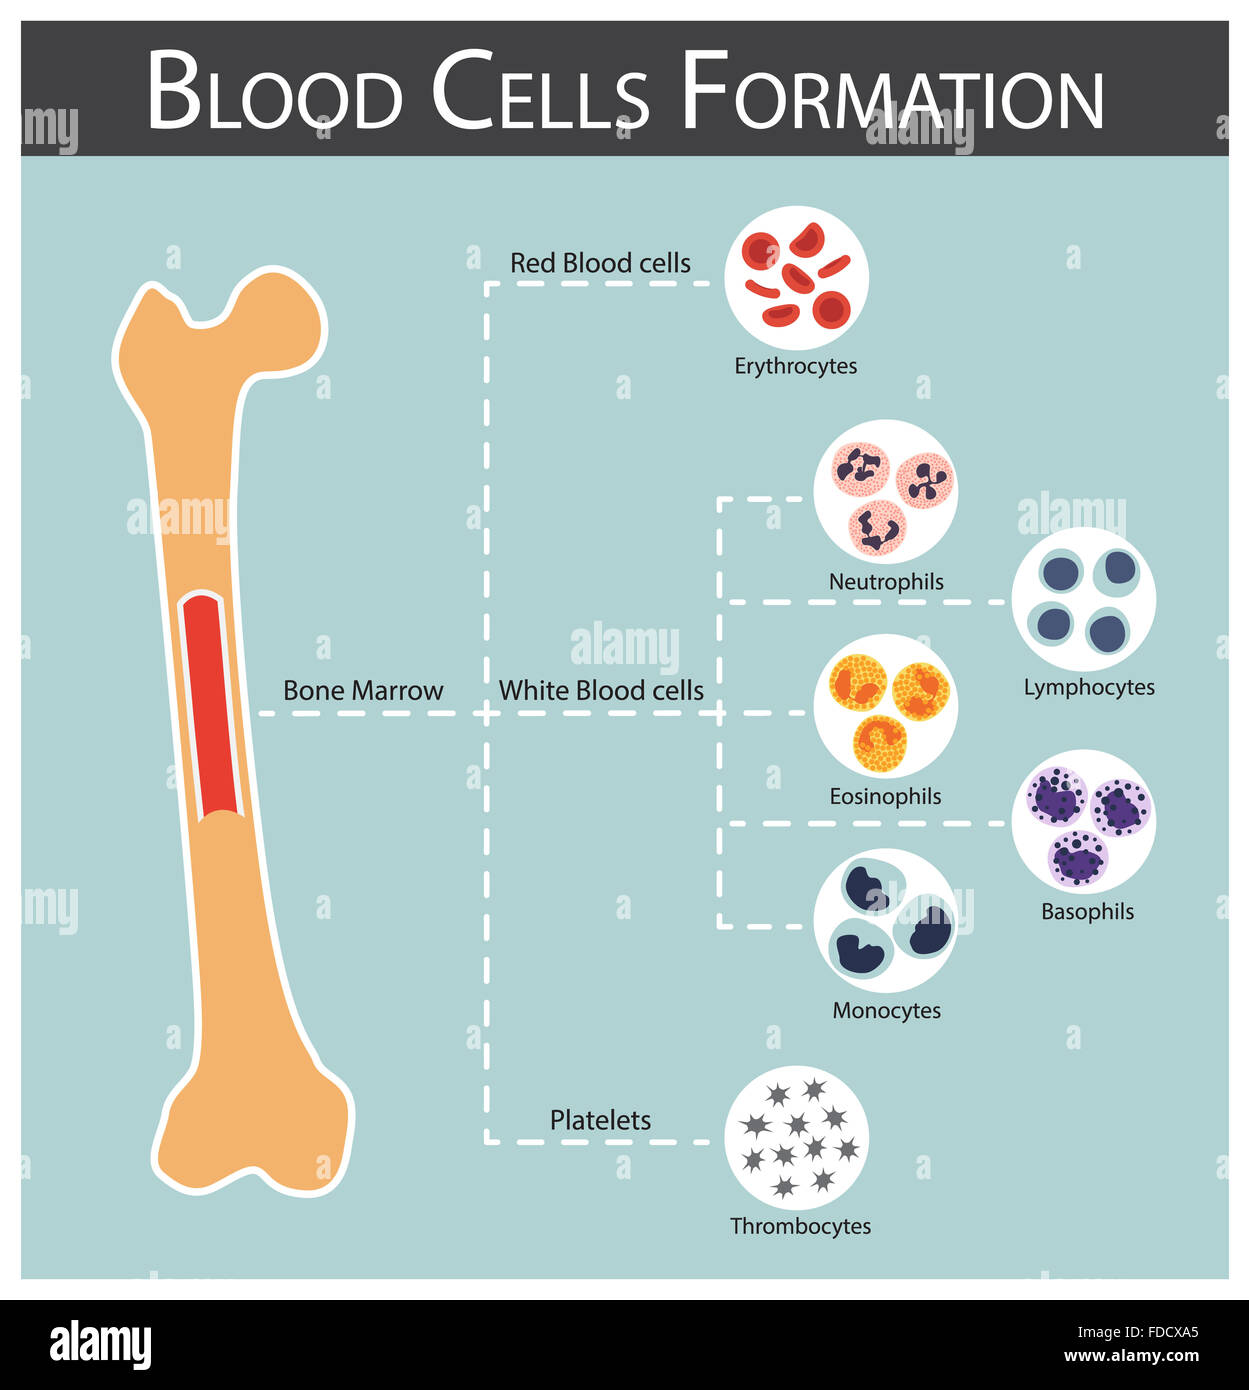 bone marrow cell diagram eyfs planning cycle blood cells formation produce